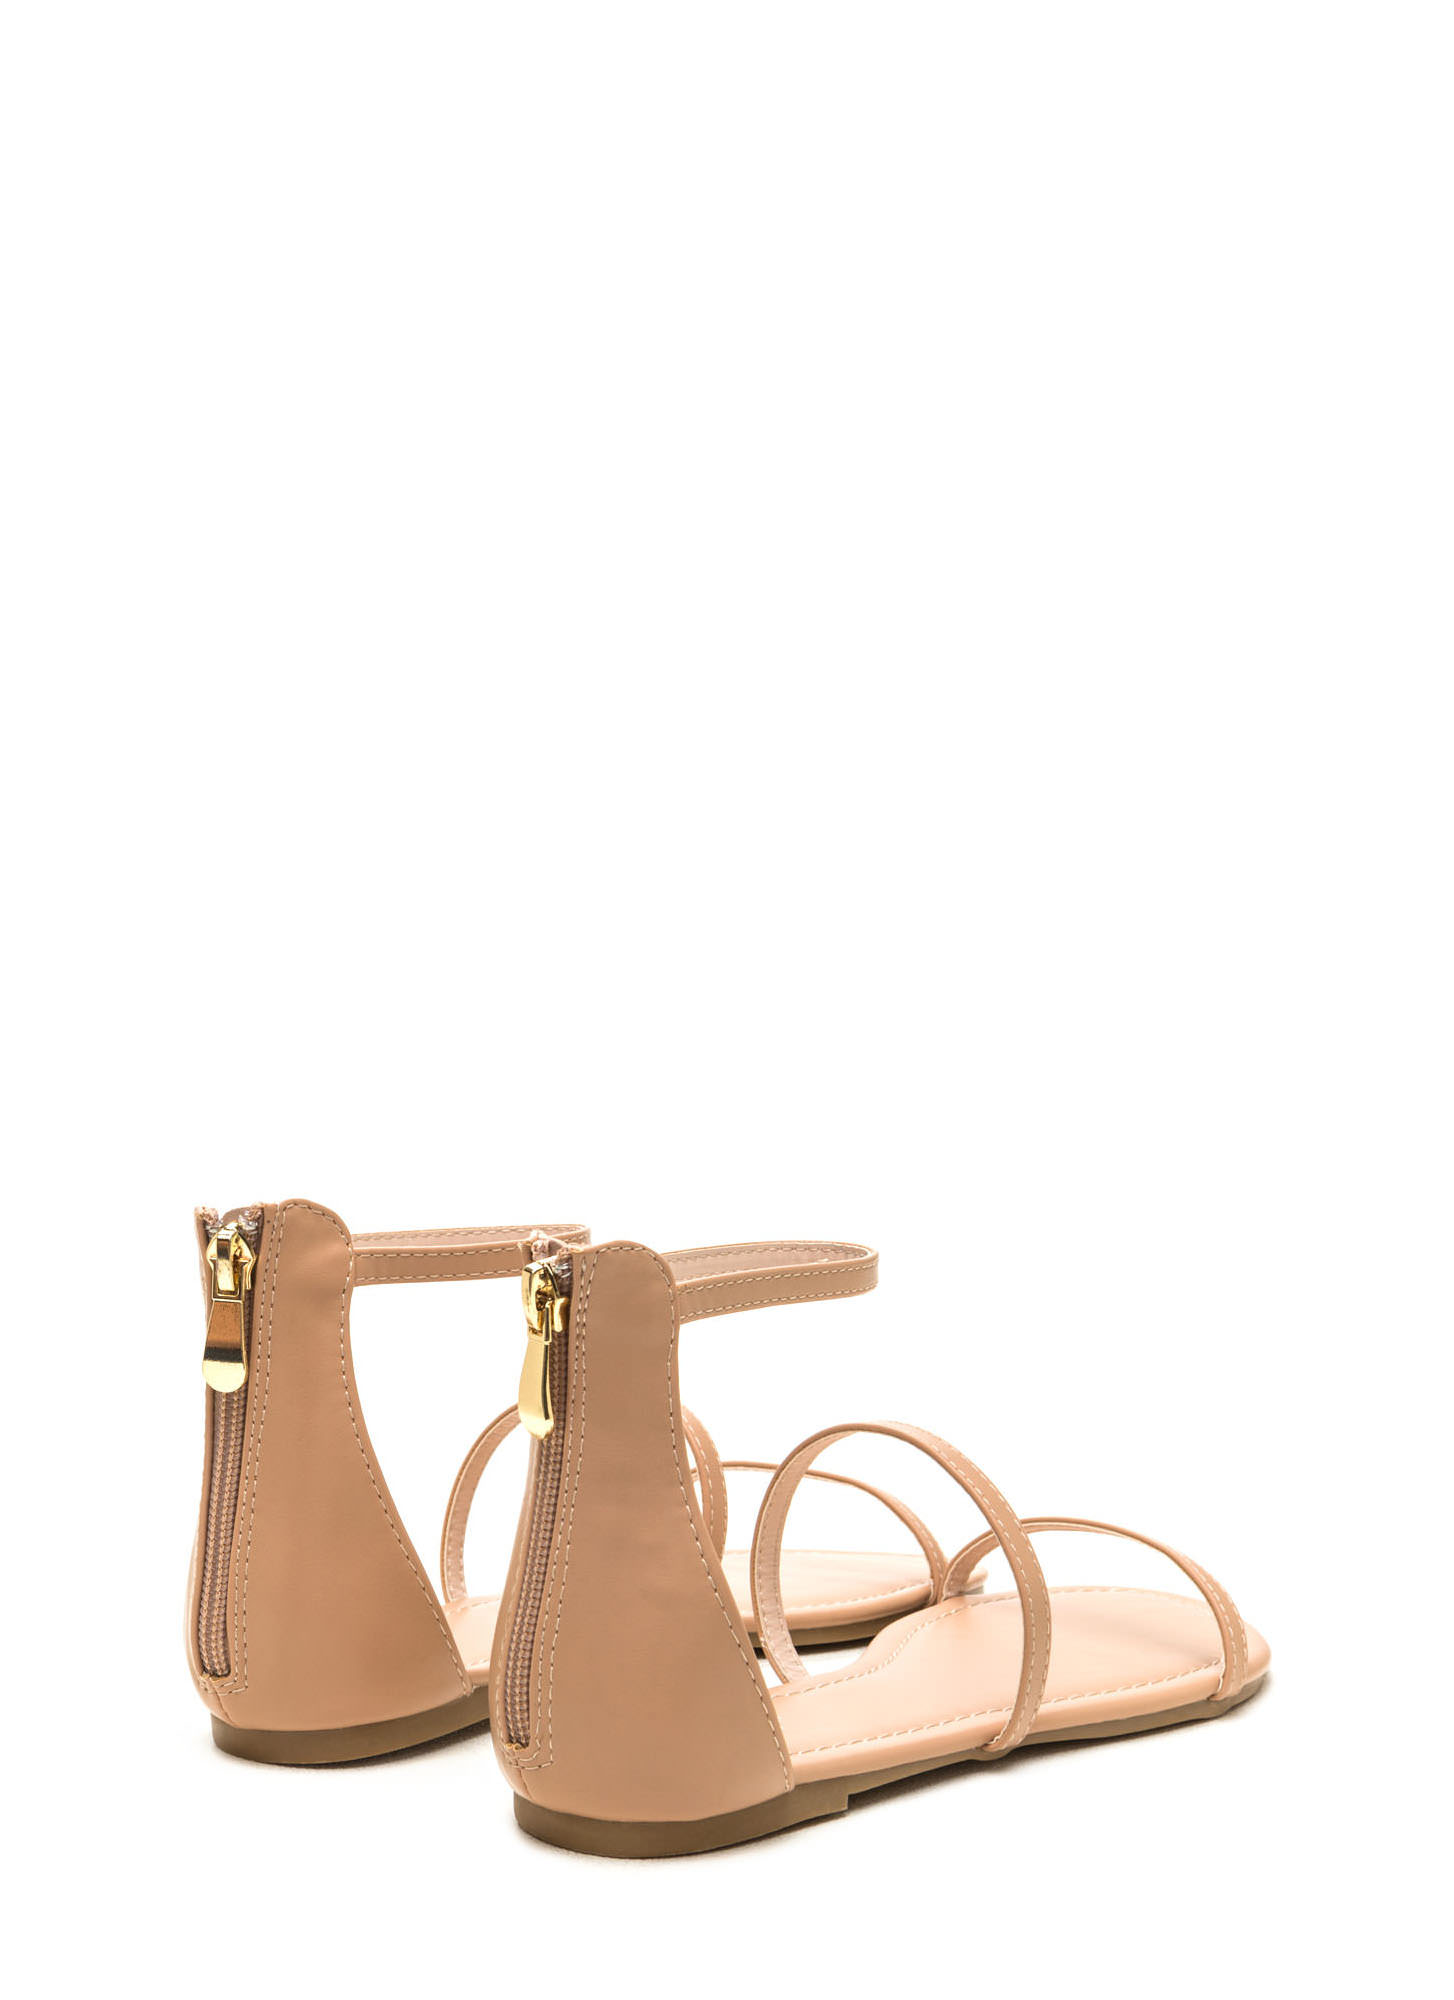 Triple Whammy Faux Leather Sandals NUDE